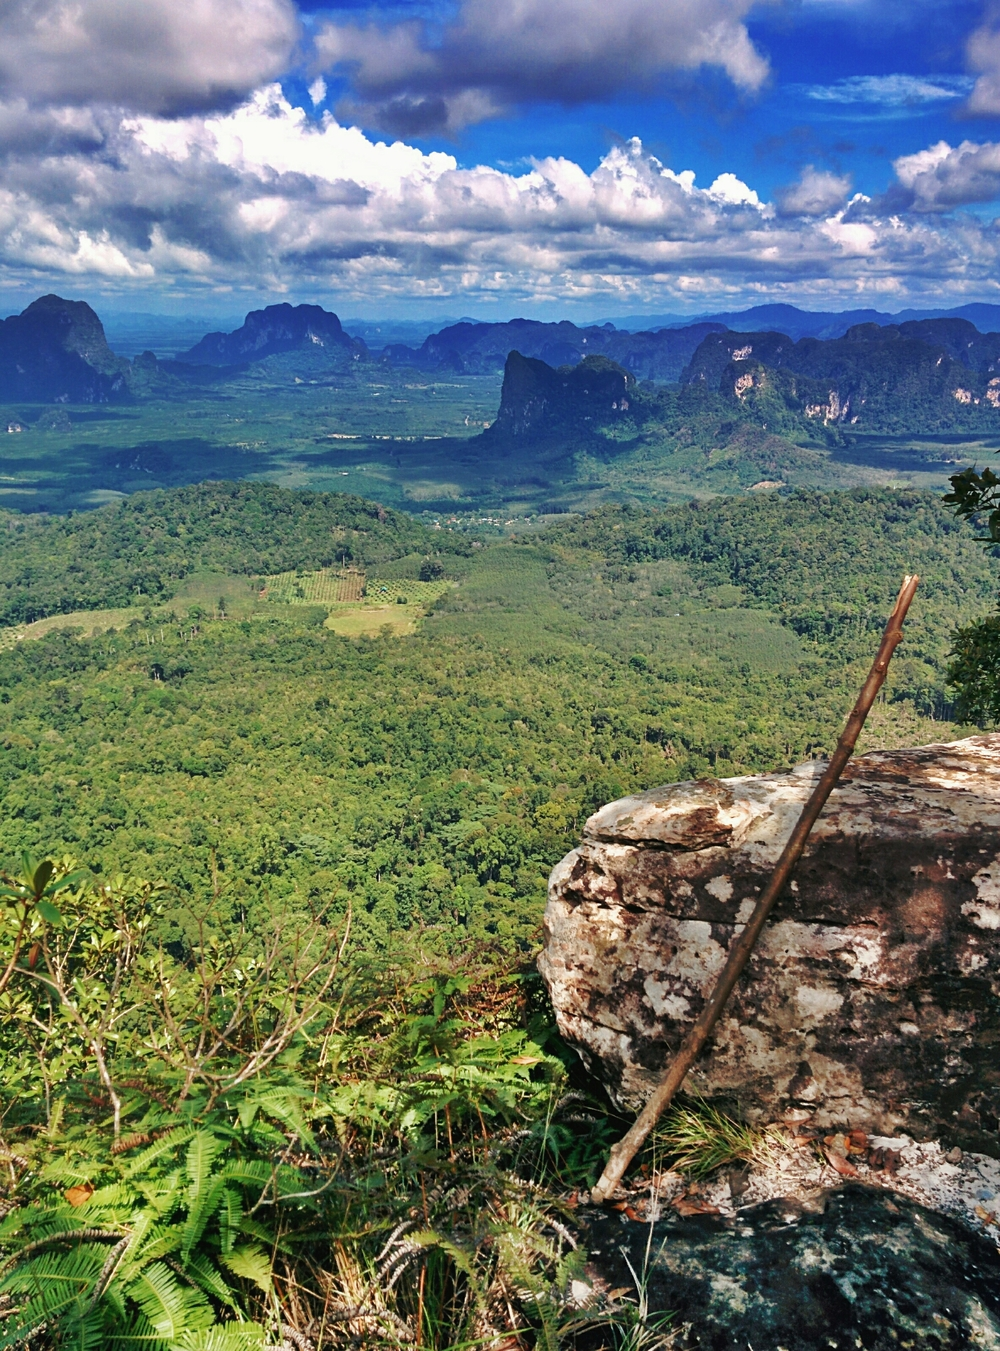 Symbolically resting my walking staff on our way down from a beautiful peak near Klong Muang Beach, Krabi, Thailand.